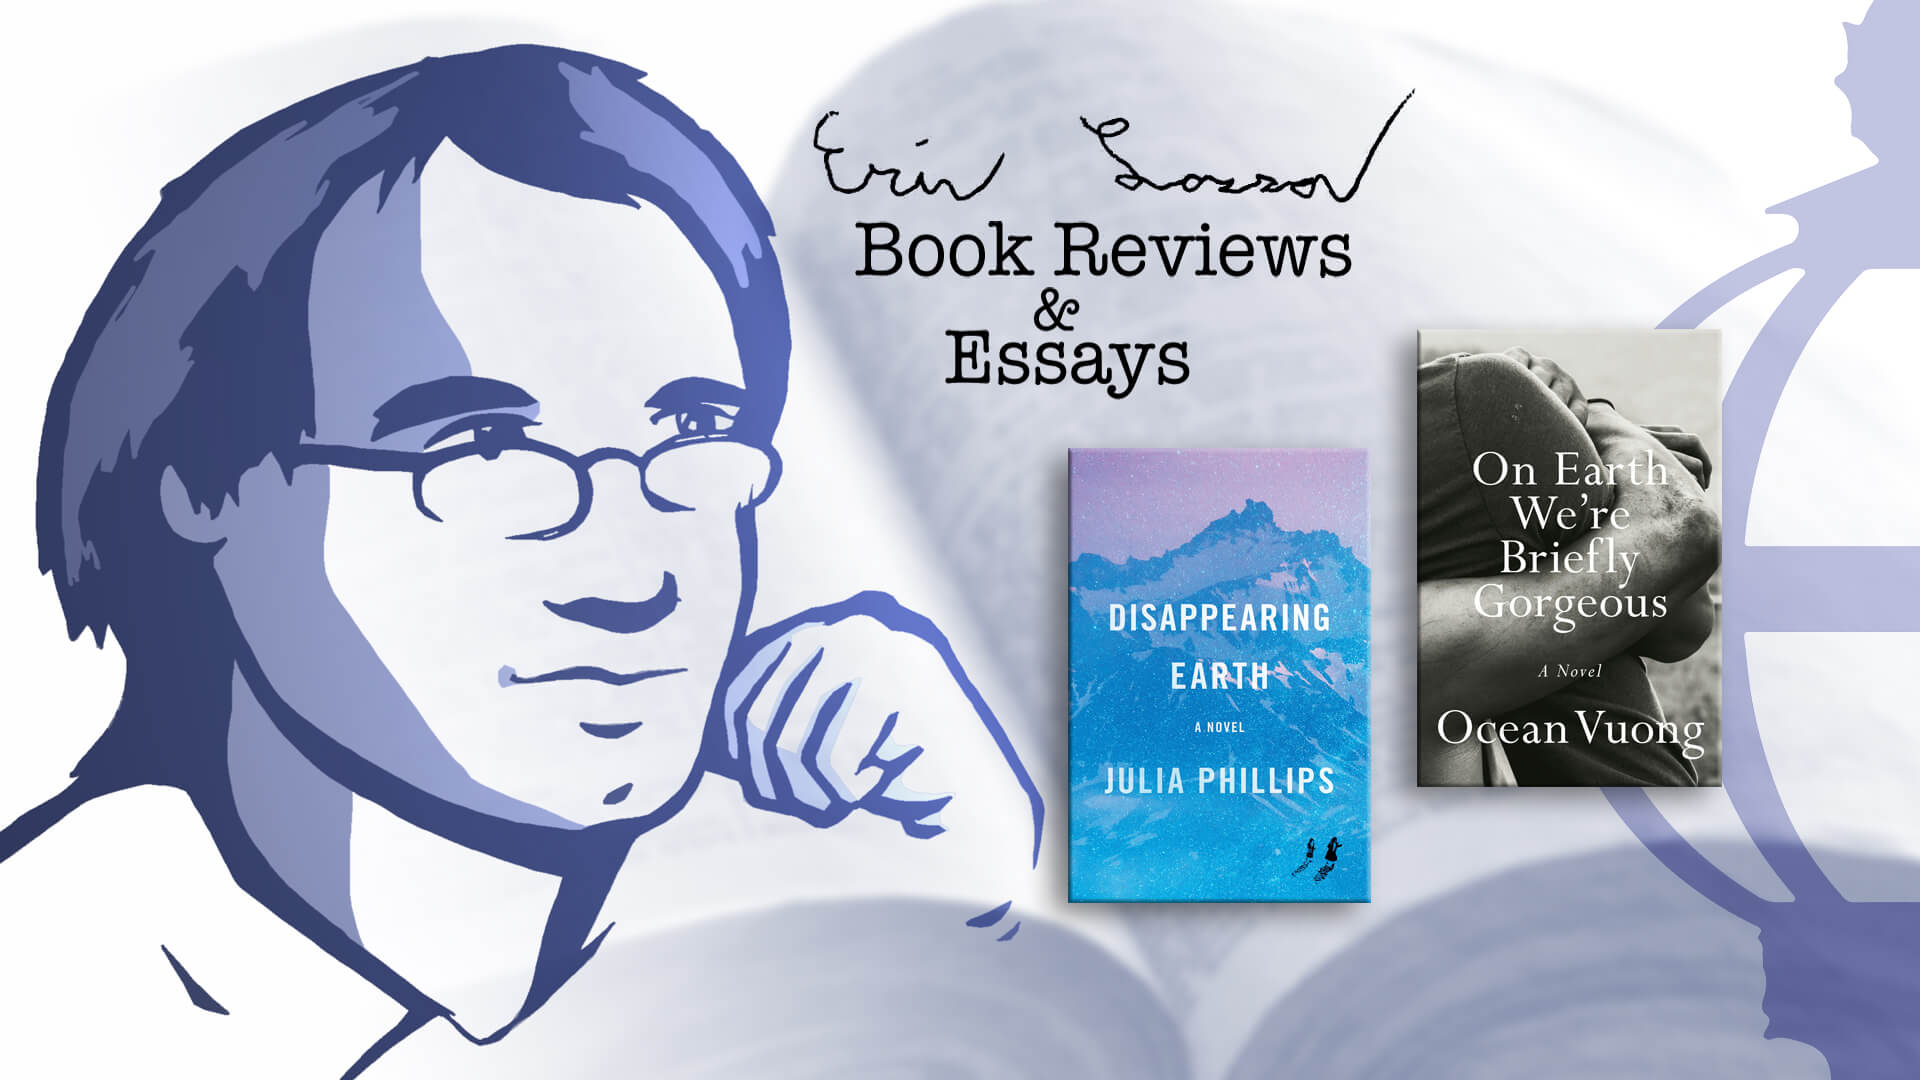 Erin Larson Book Reviews & Essays